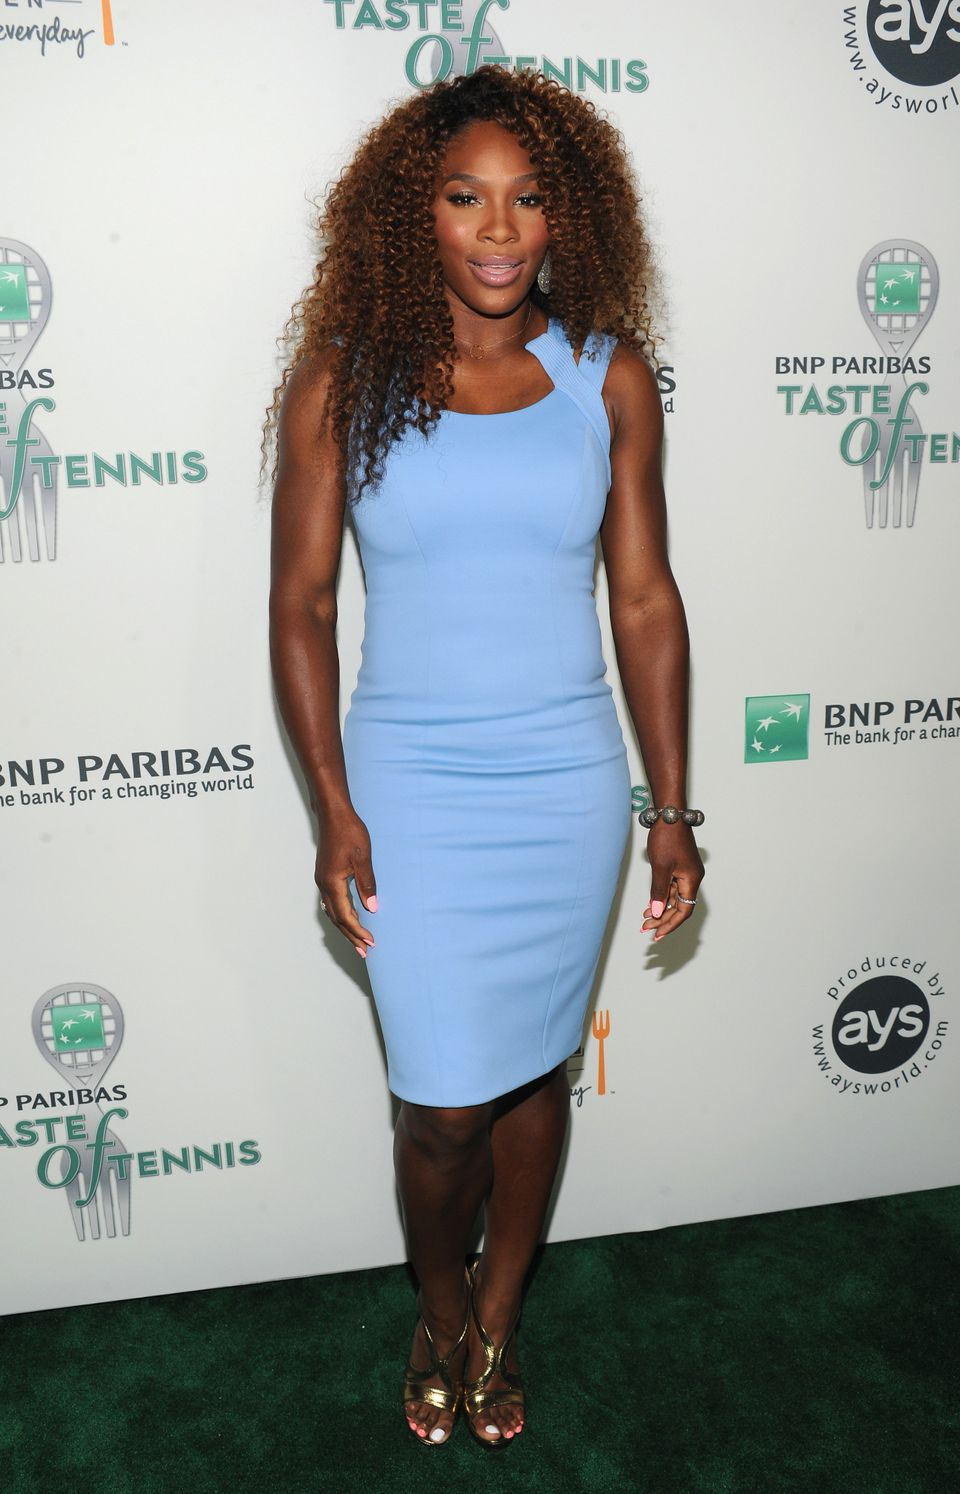 NEW YORK, NY - AUGUST 22:  Tennis Pro Serena Williams attends the 14th Annual BNP Paribas Taste Of Tennis at W New York Hotel